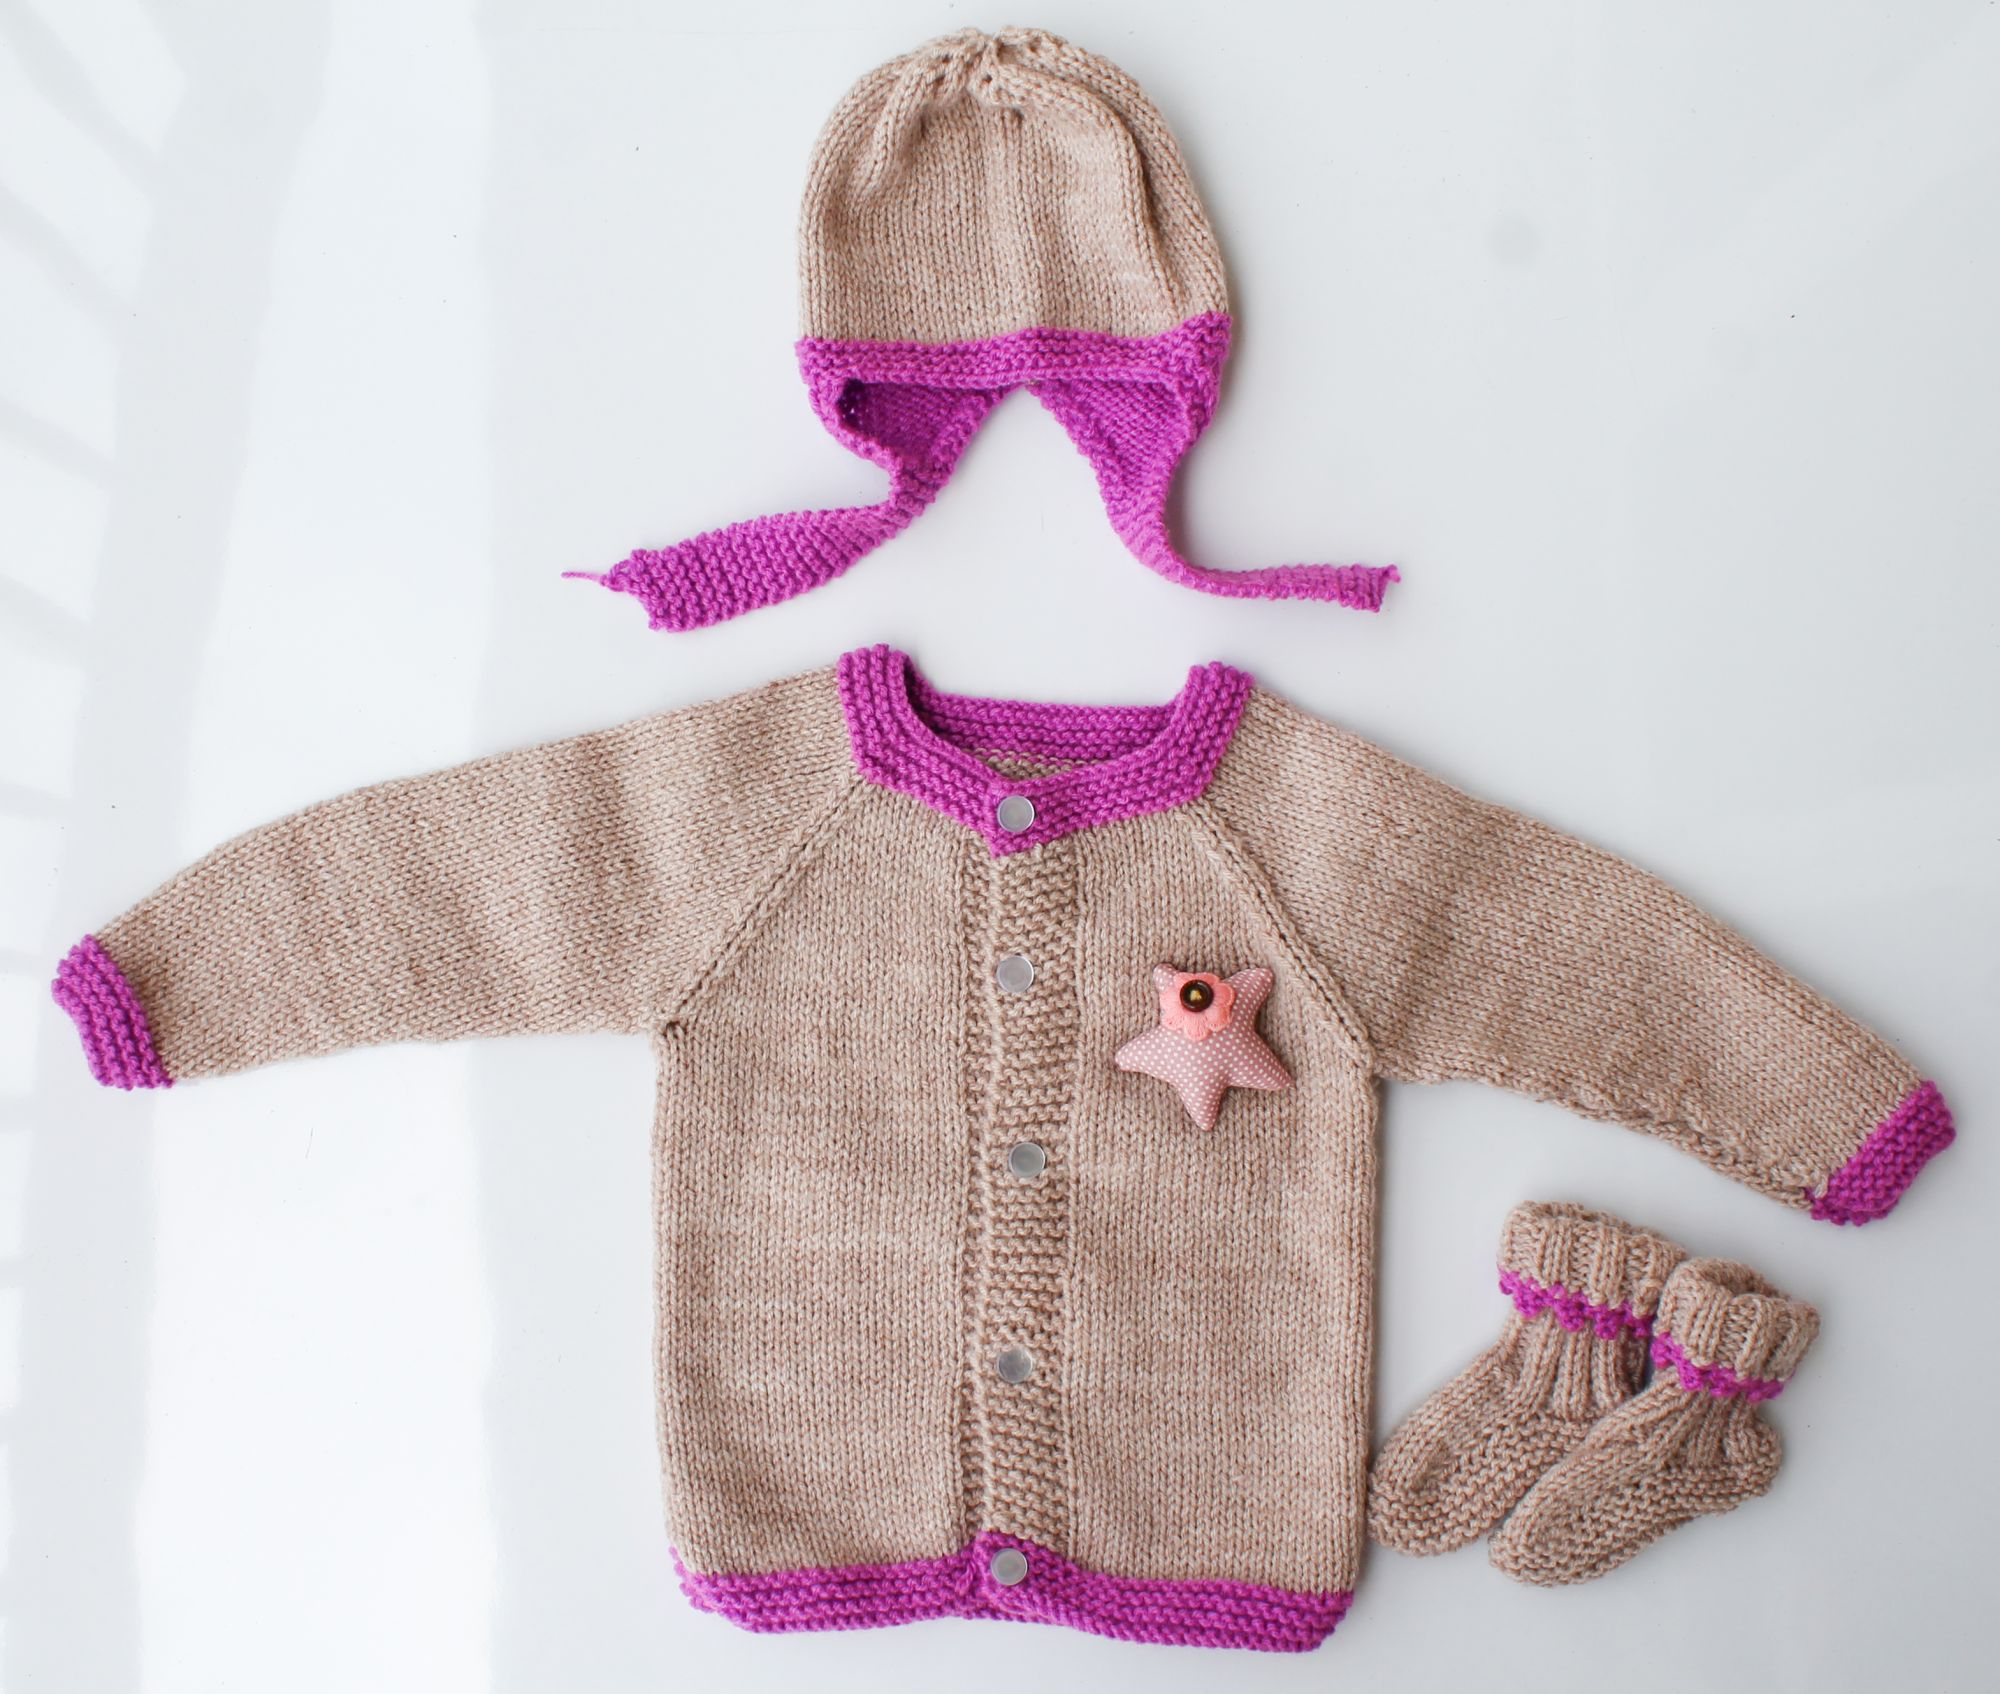 Woonie Handmade Beige and Purple Knitted Sweater with Cap and Booties for Kids